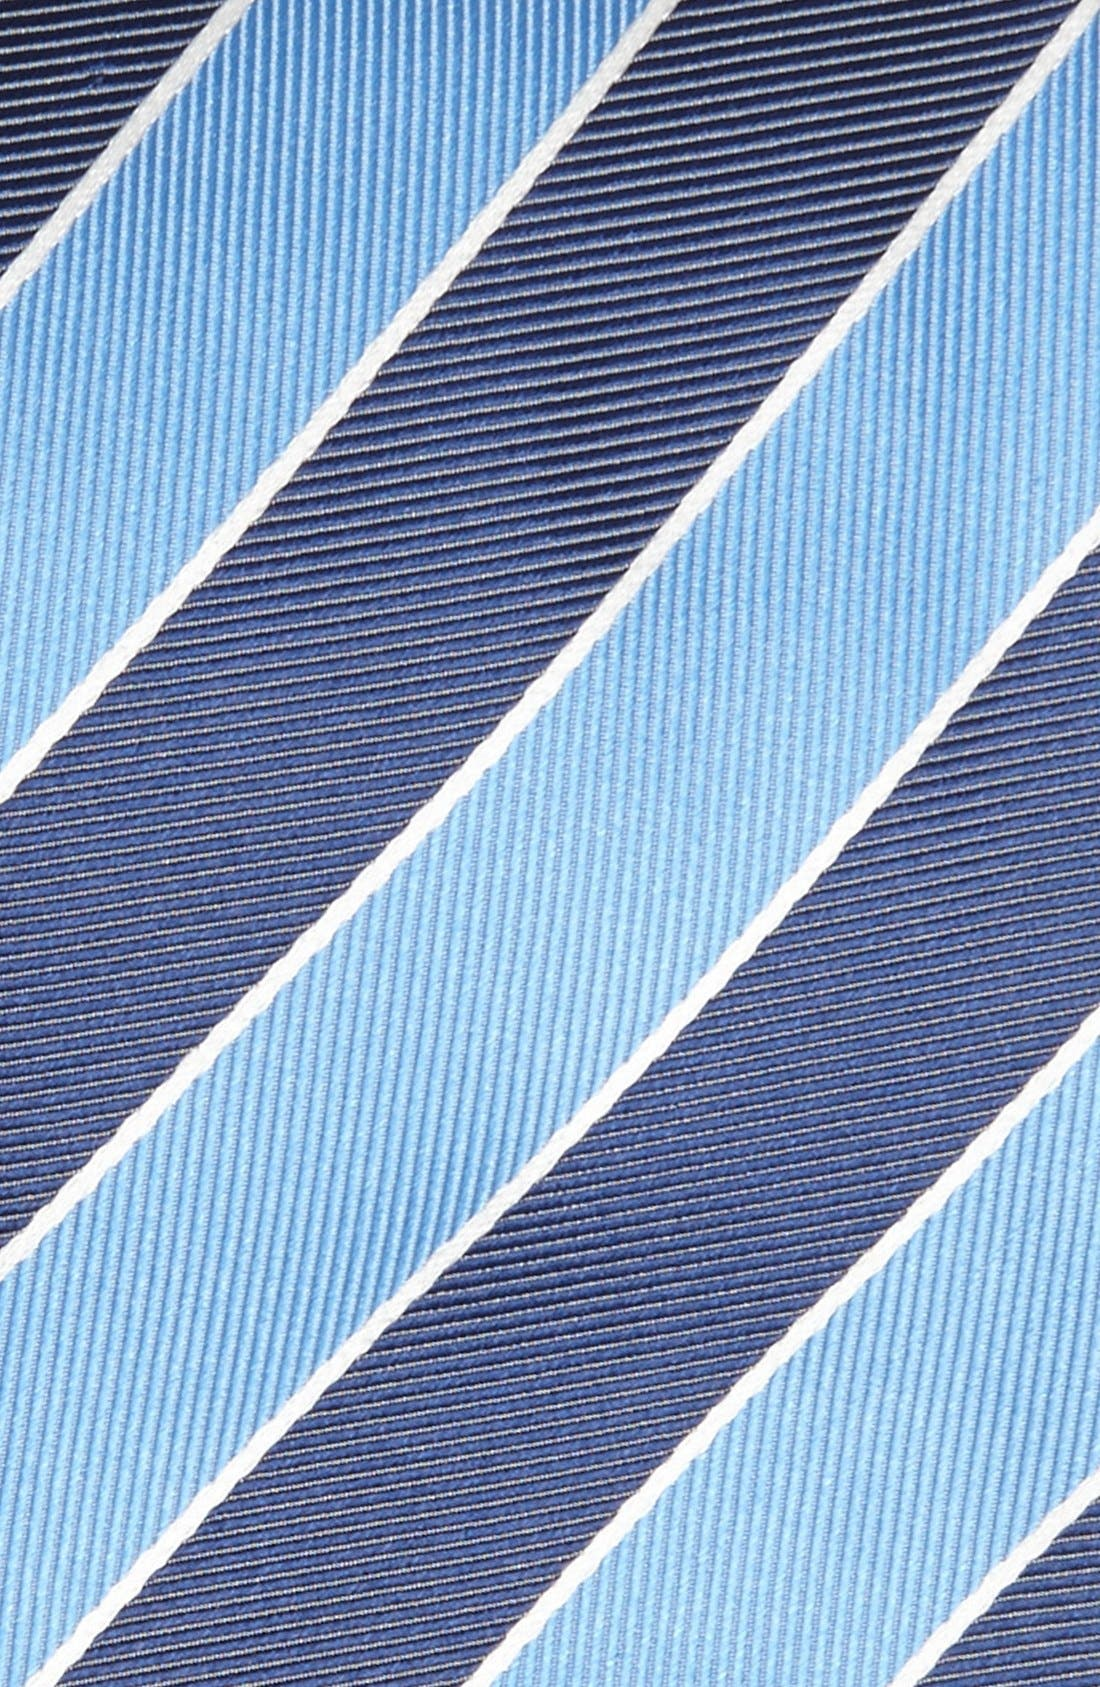 HUGO BOSS Woven Silk Tie,                             Alternate thumbnail 2, color,                             470